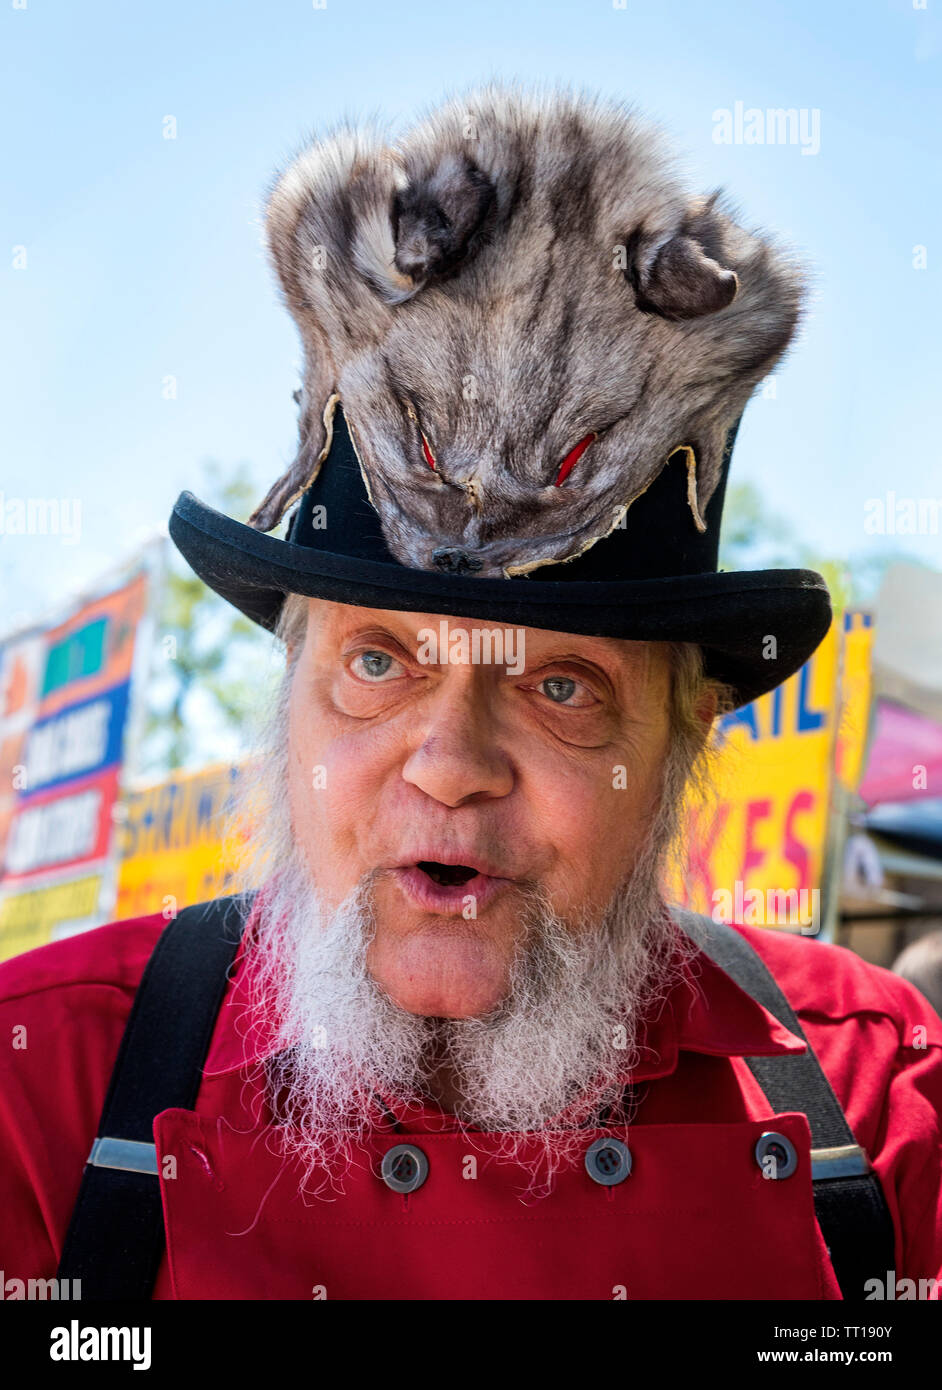 Pioneer Days small town annual celebration in North Central Florida. Man with unique fox pelt covered hat. Stock Photo